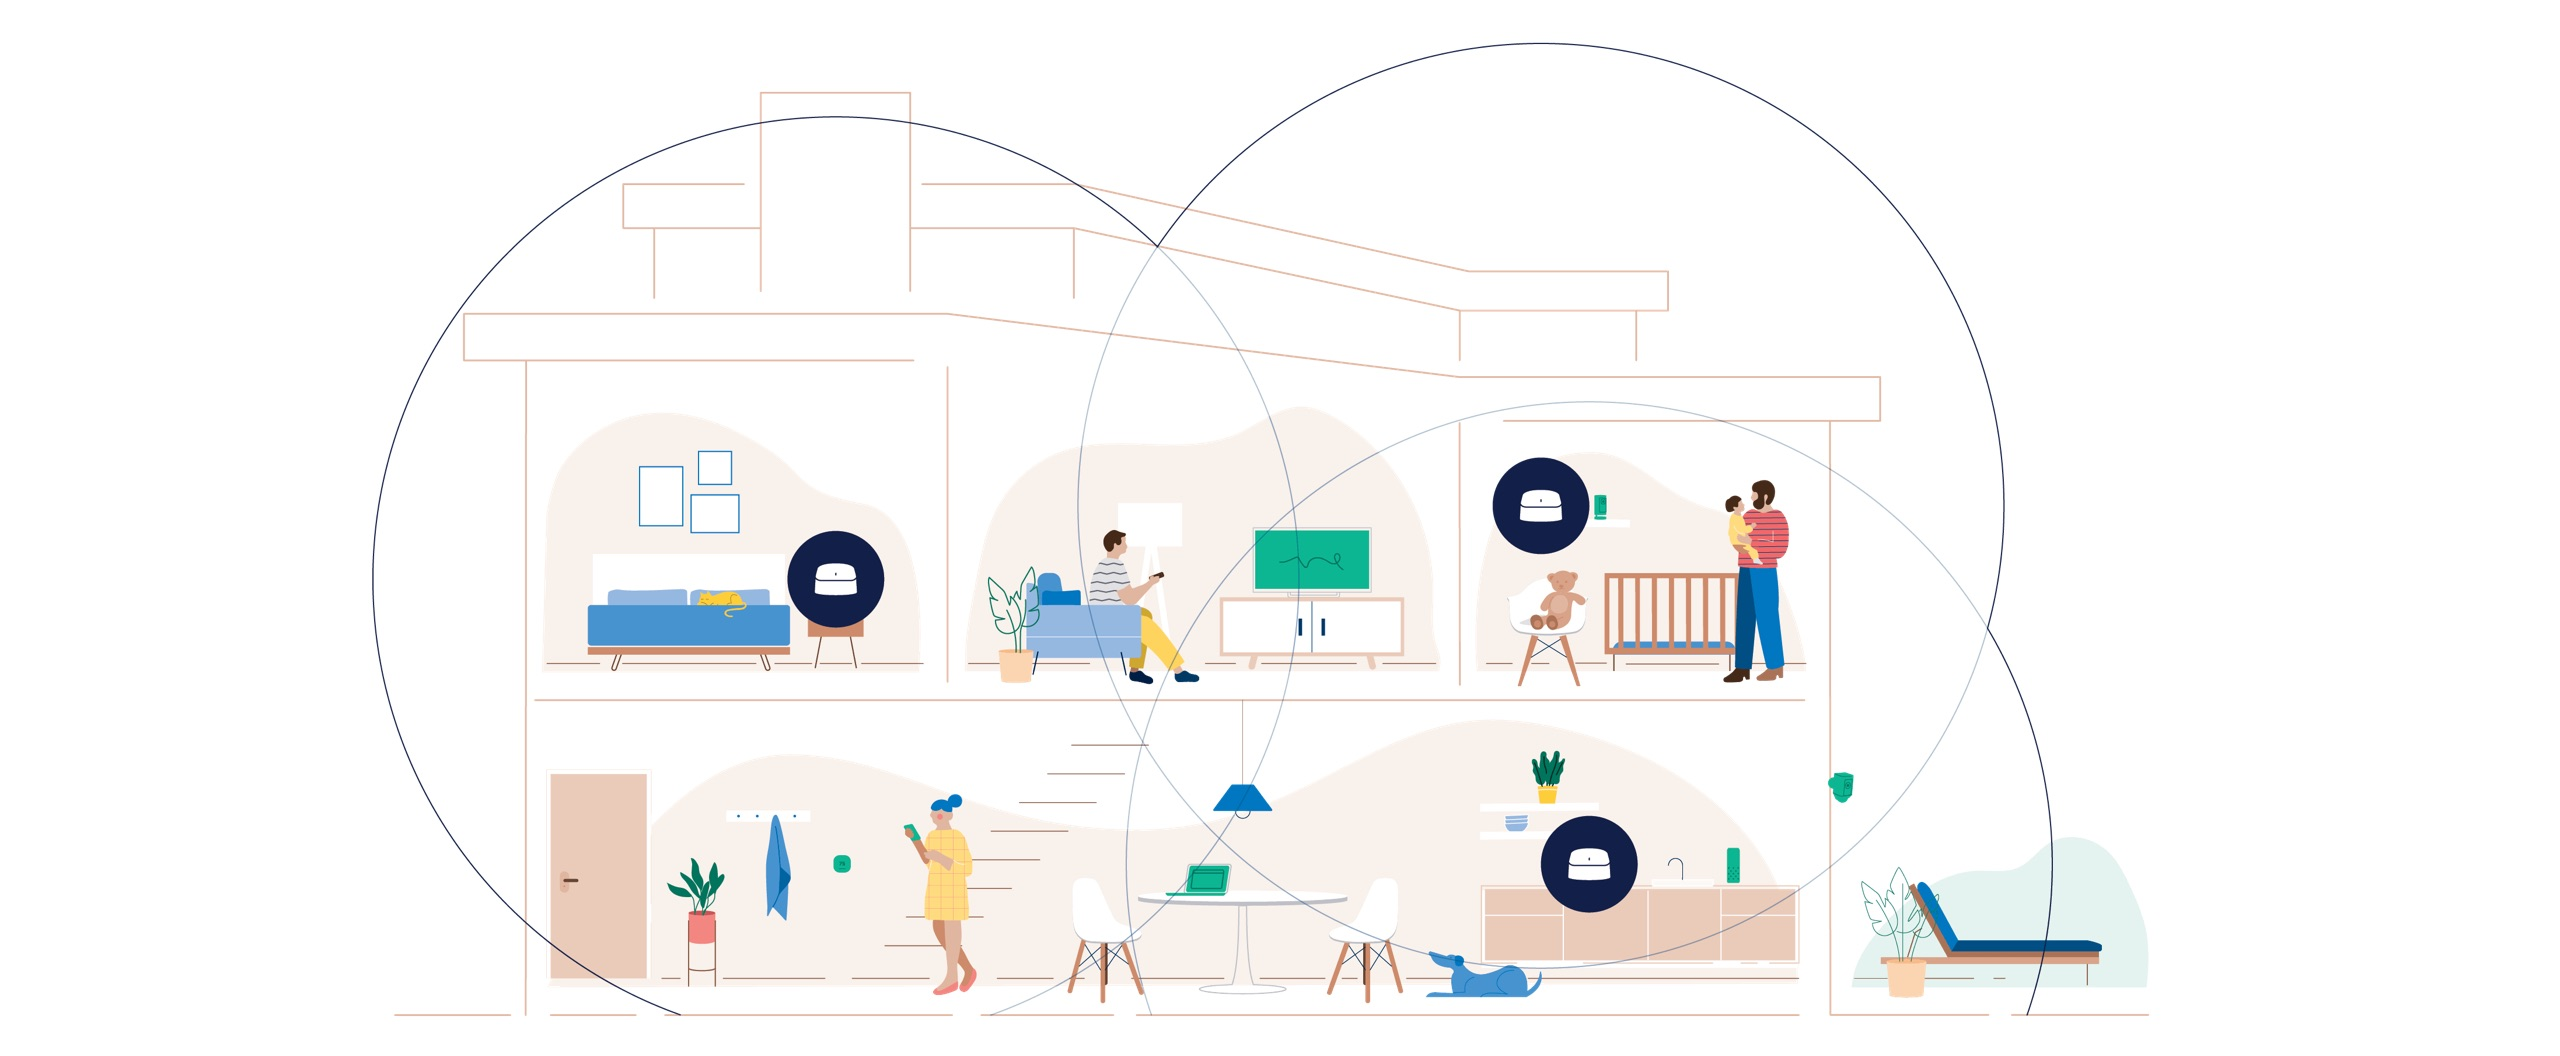 eero throughout your home